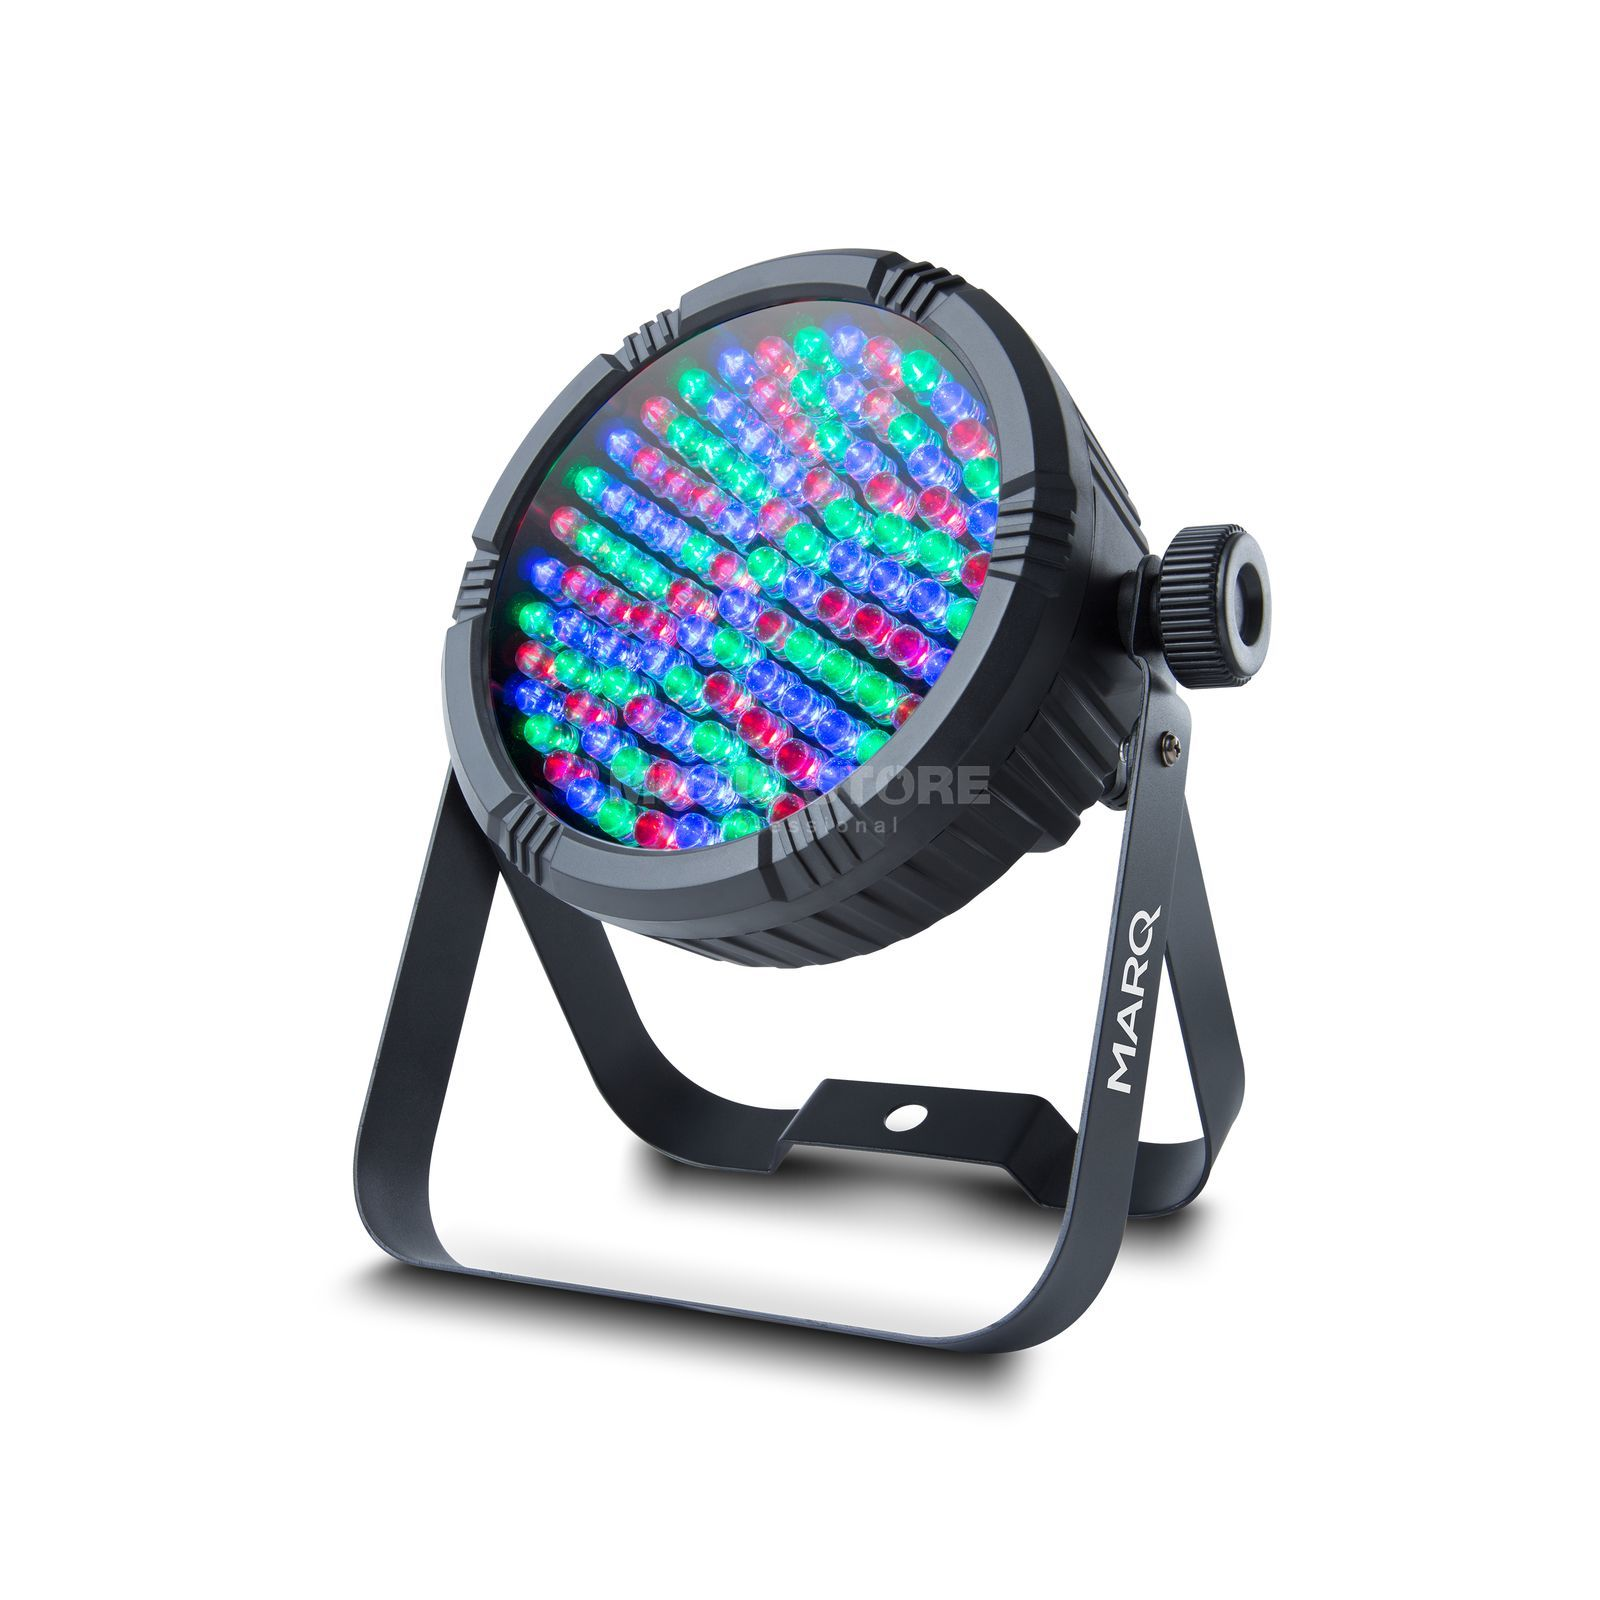 MARQ Lighting Colormax PAR 56 108 x 10 mm RGB, IR Produktbild